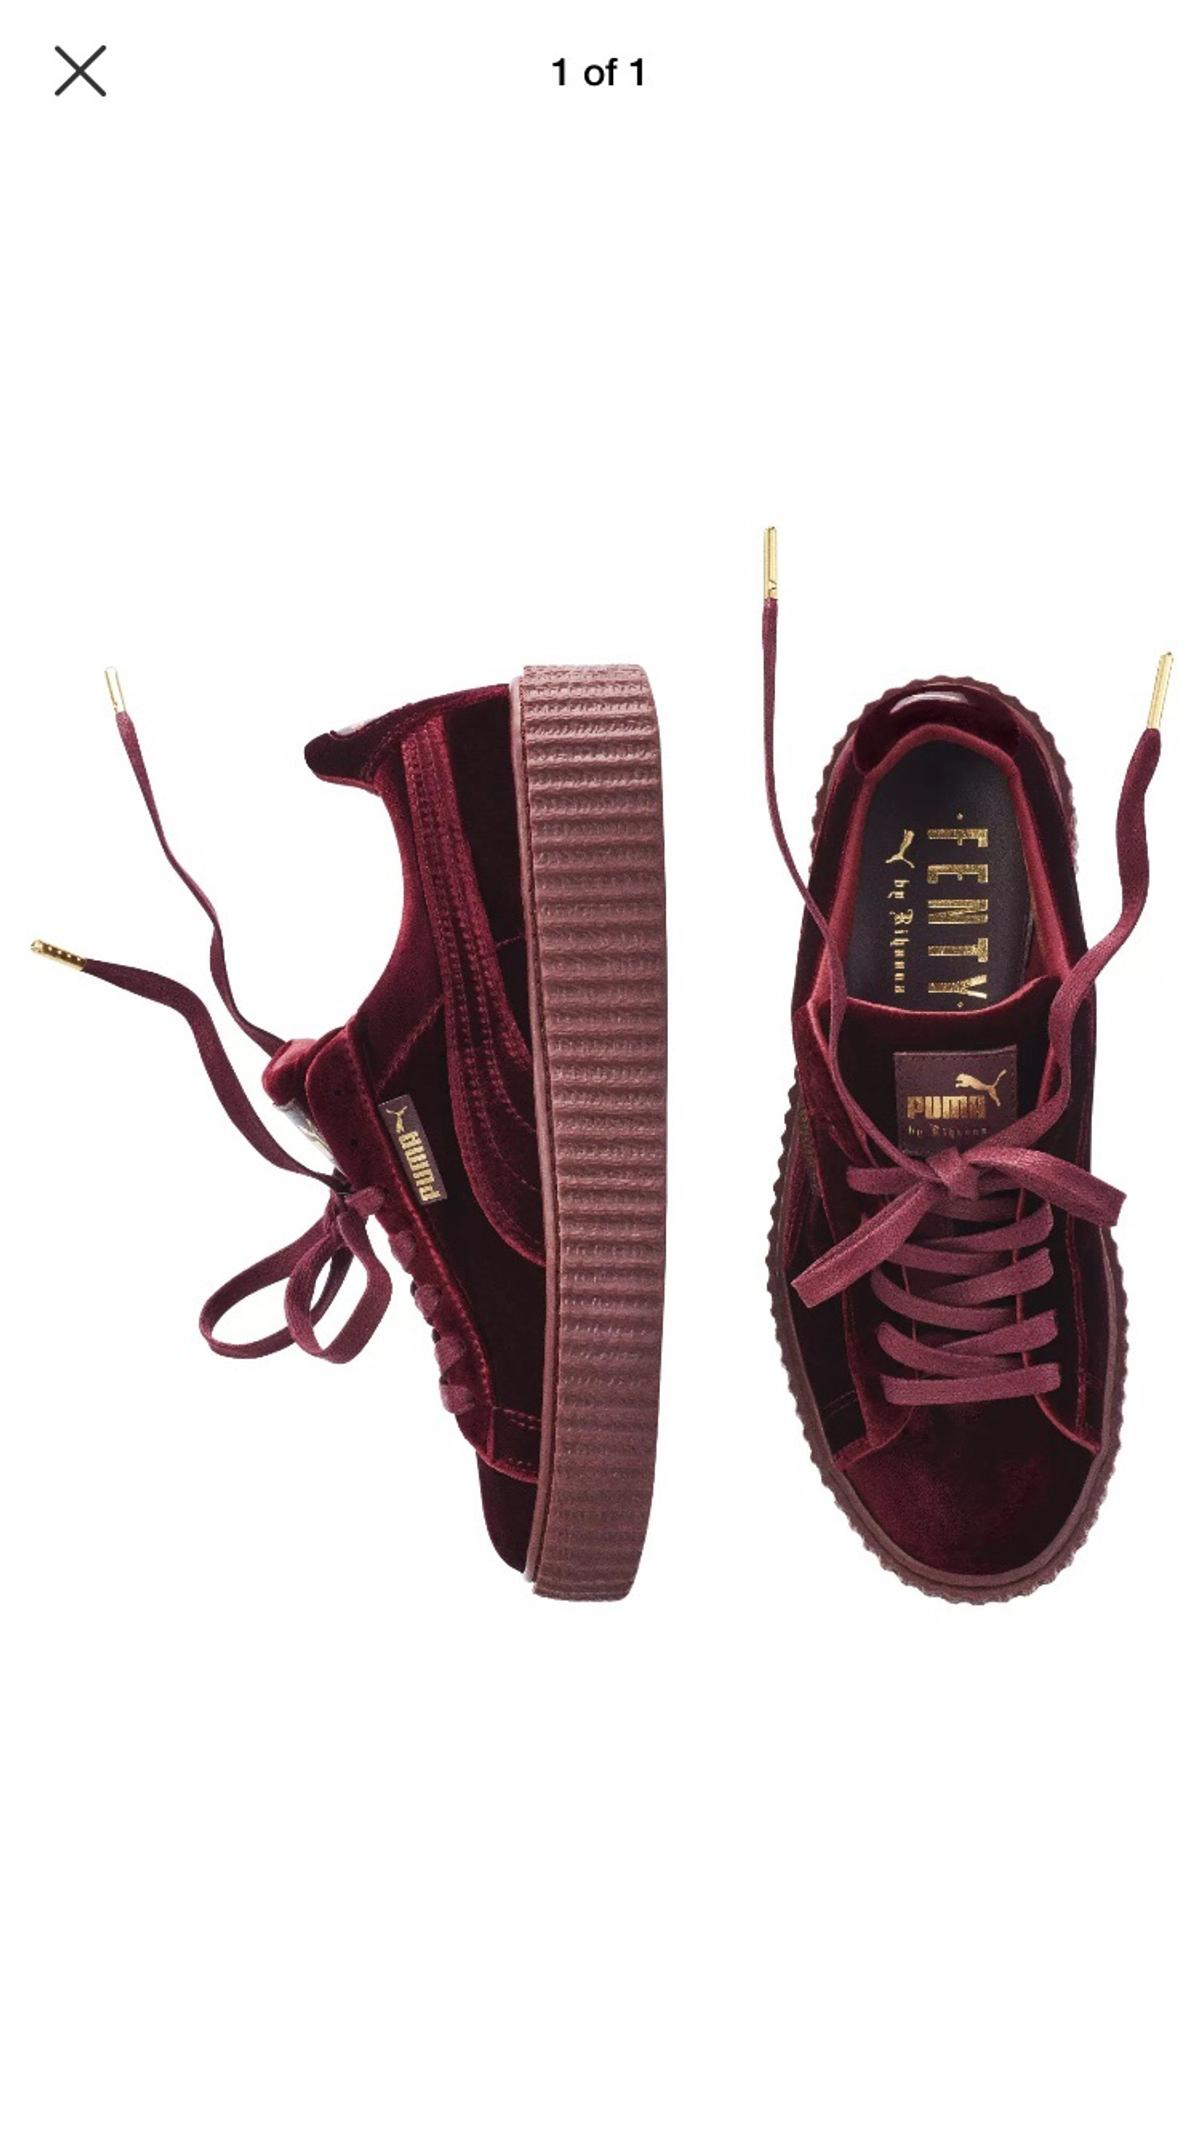 newest 6a25f 85f59 Puma x Rihanna Velvet Fenty Creepers UK 6 in SW15 London für ...